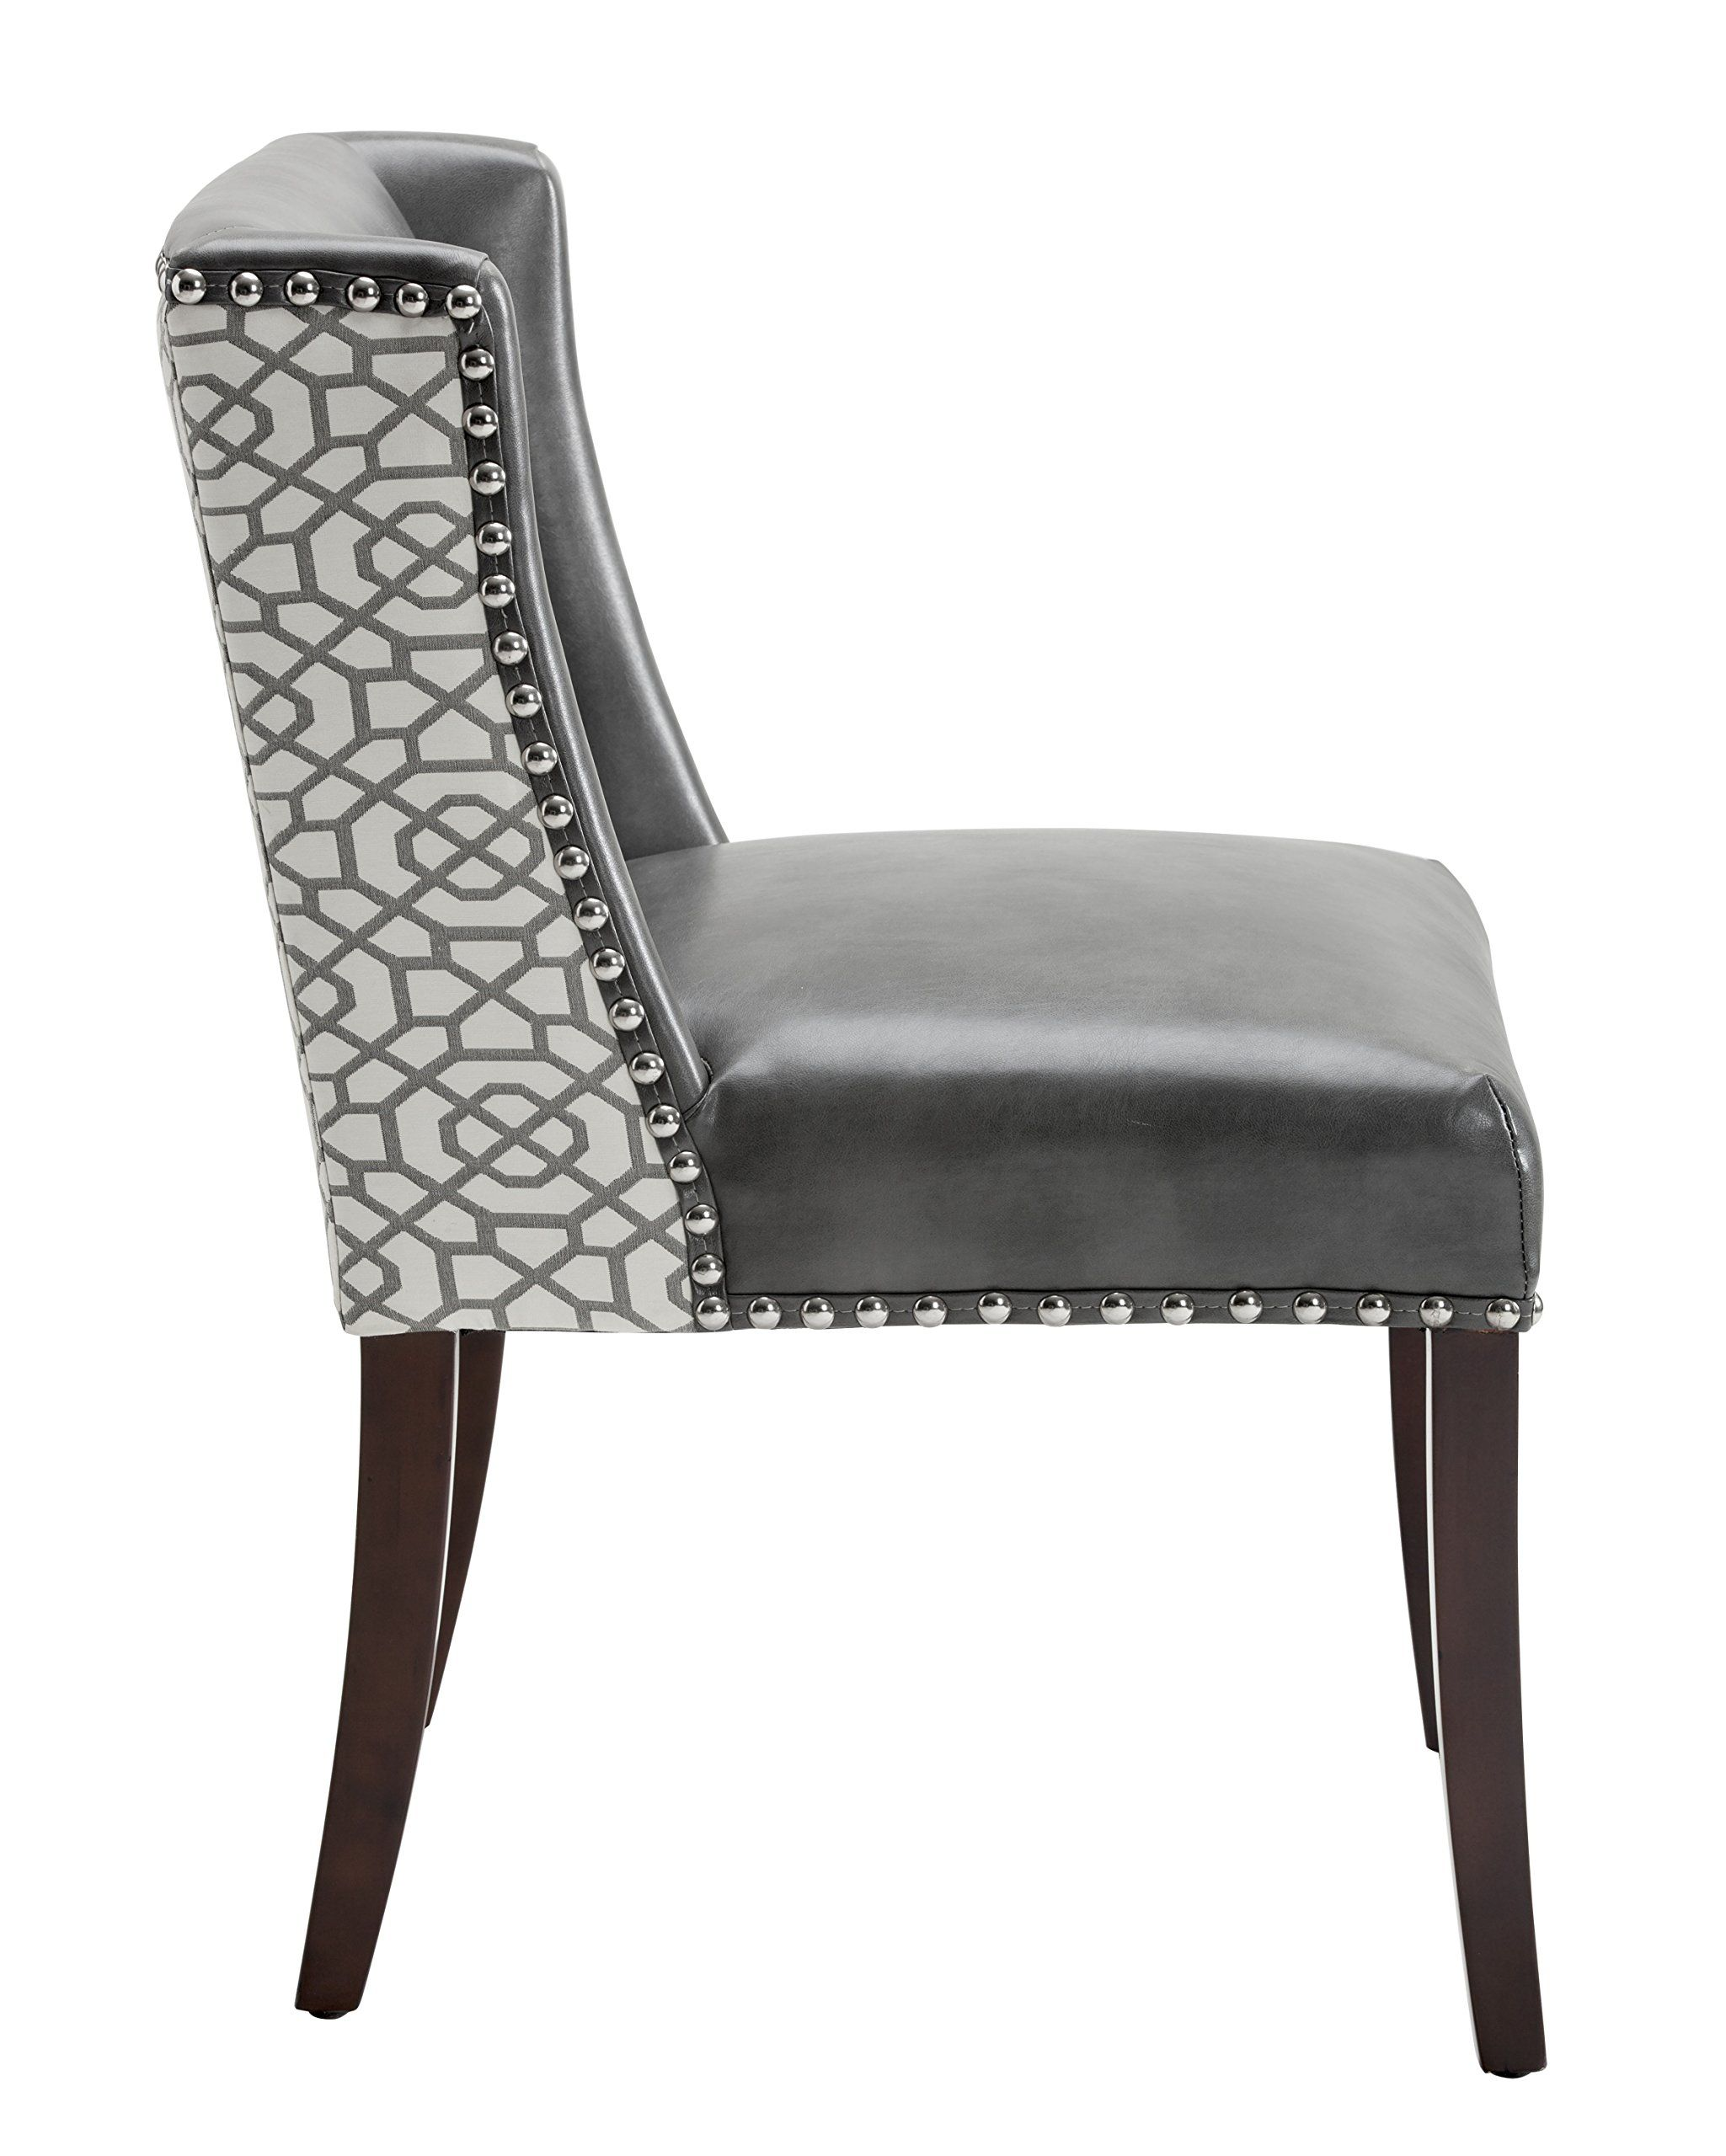 Sunpan Modern Marlin Dining Chair with Grey Leather and